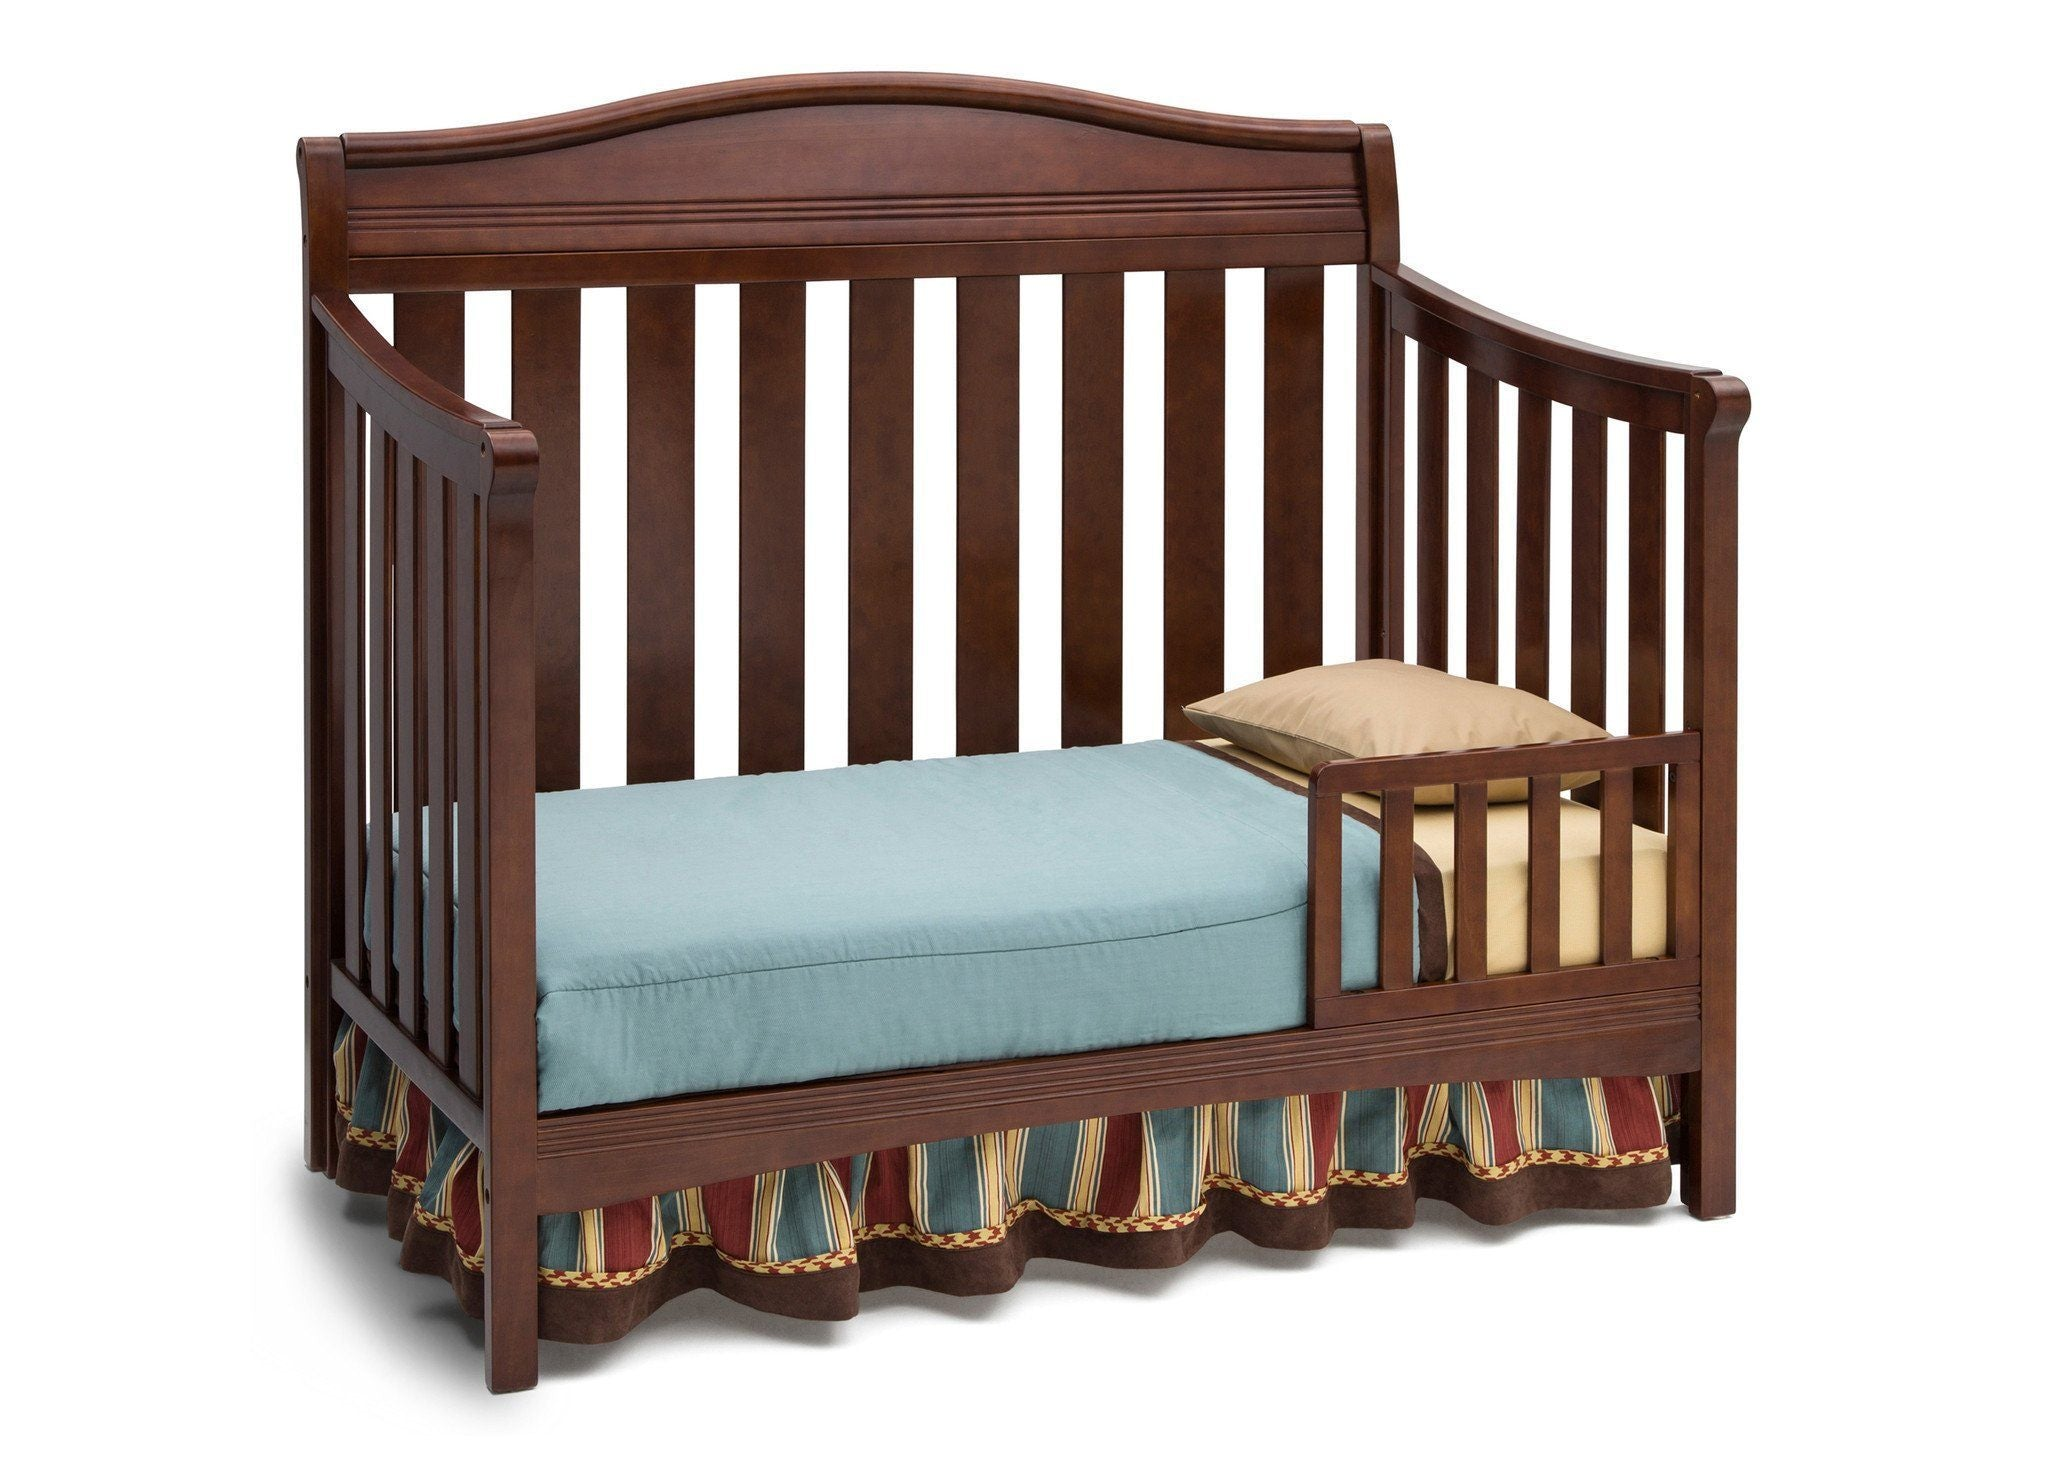 rail cribs picture guard crib toddler breeze use daybed for kids legacy and summer of with